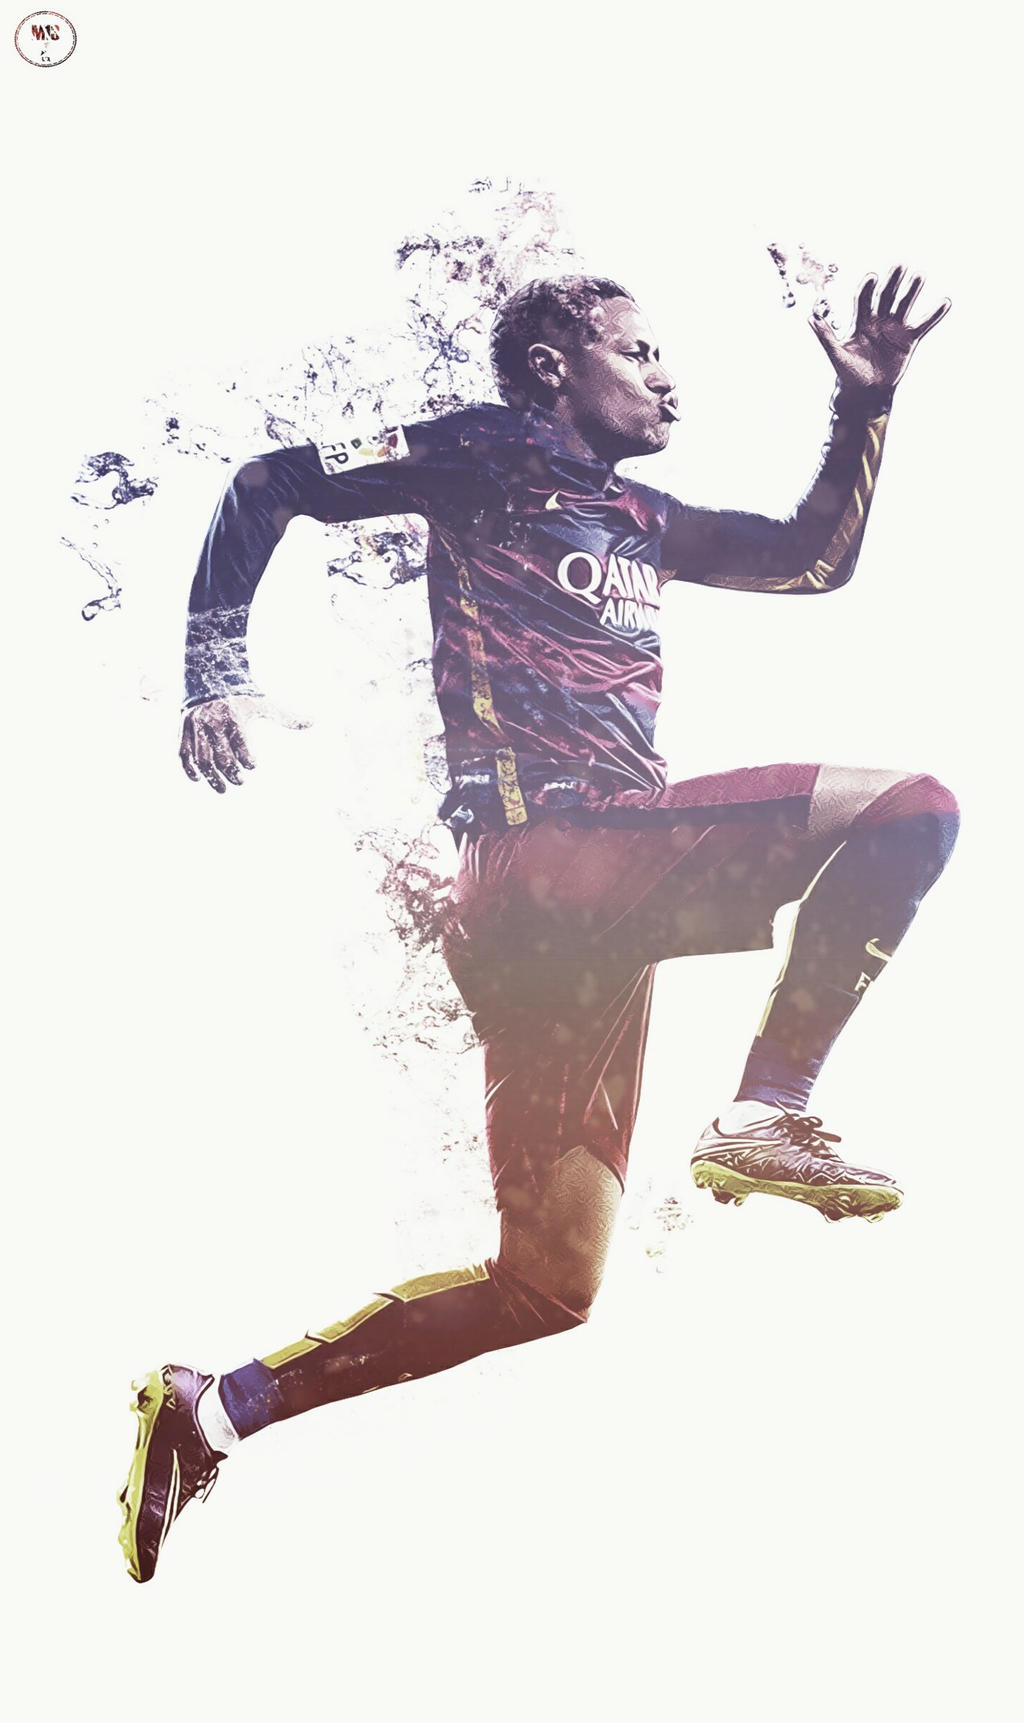 Wallpaper iphone neymar -  Neymar Jr Wallpaper 2015 16 By Sam4saken